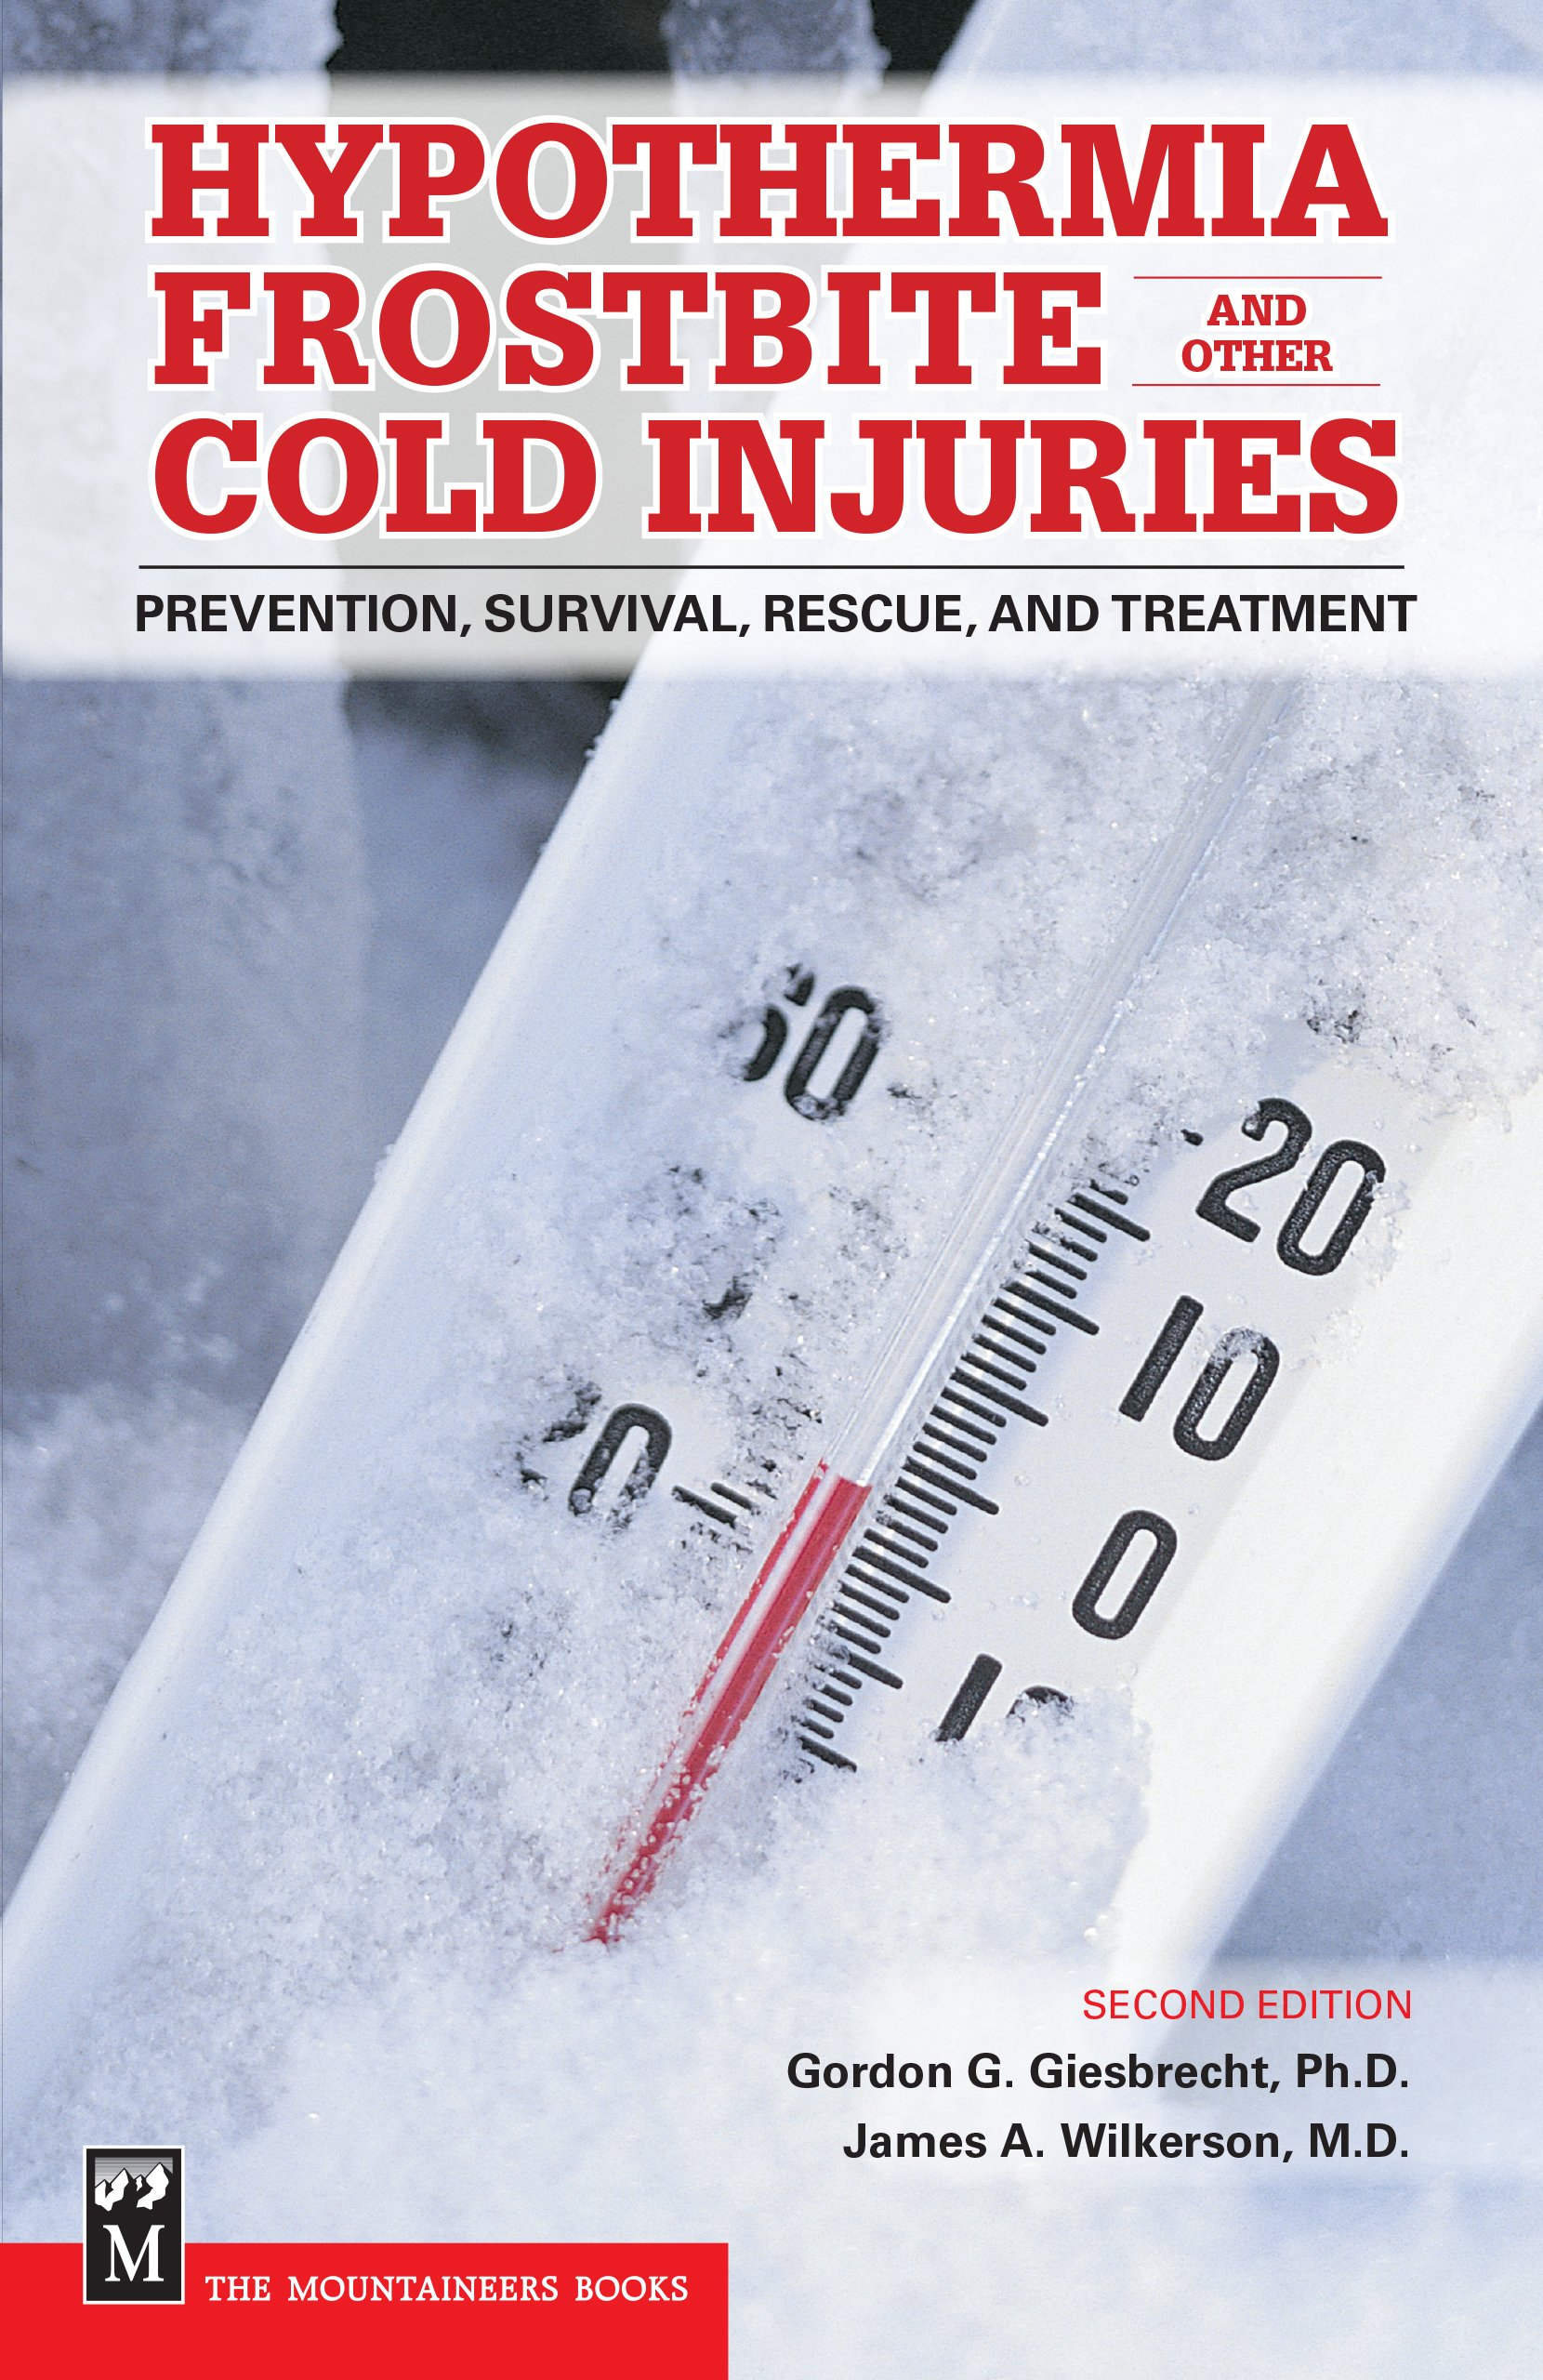 Download Hypothermia Frostbite And Other Cold Injuries: Prevention, Recognition, Rescue, And Treatment 